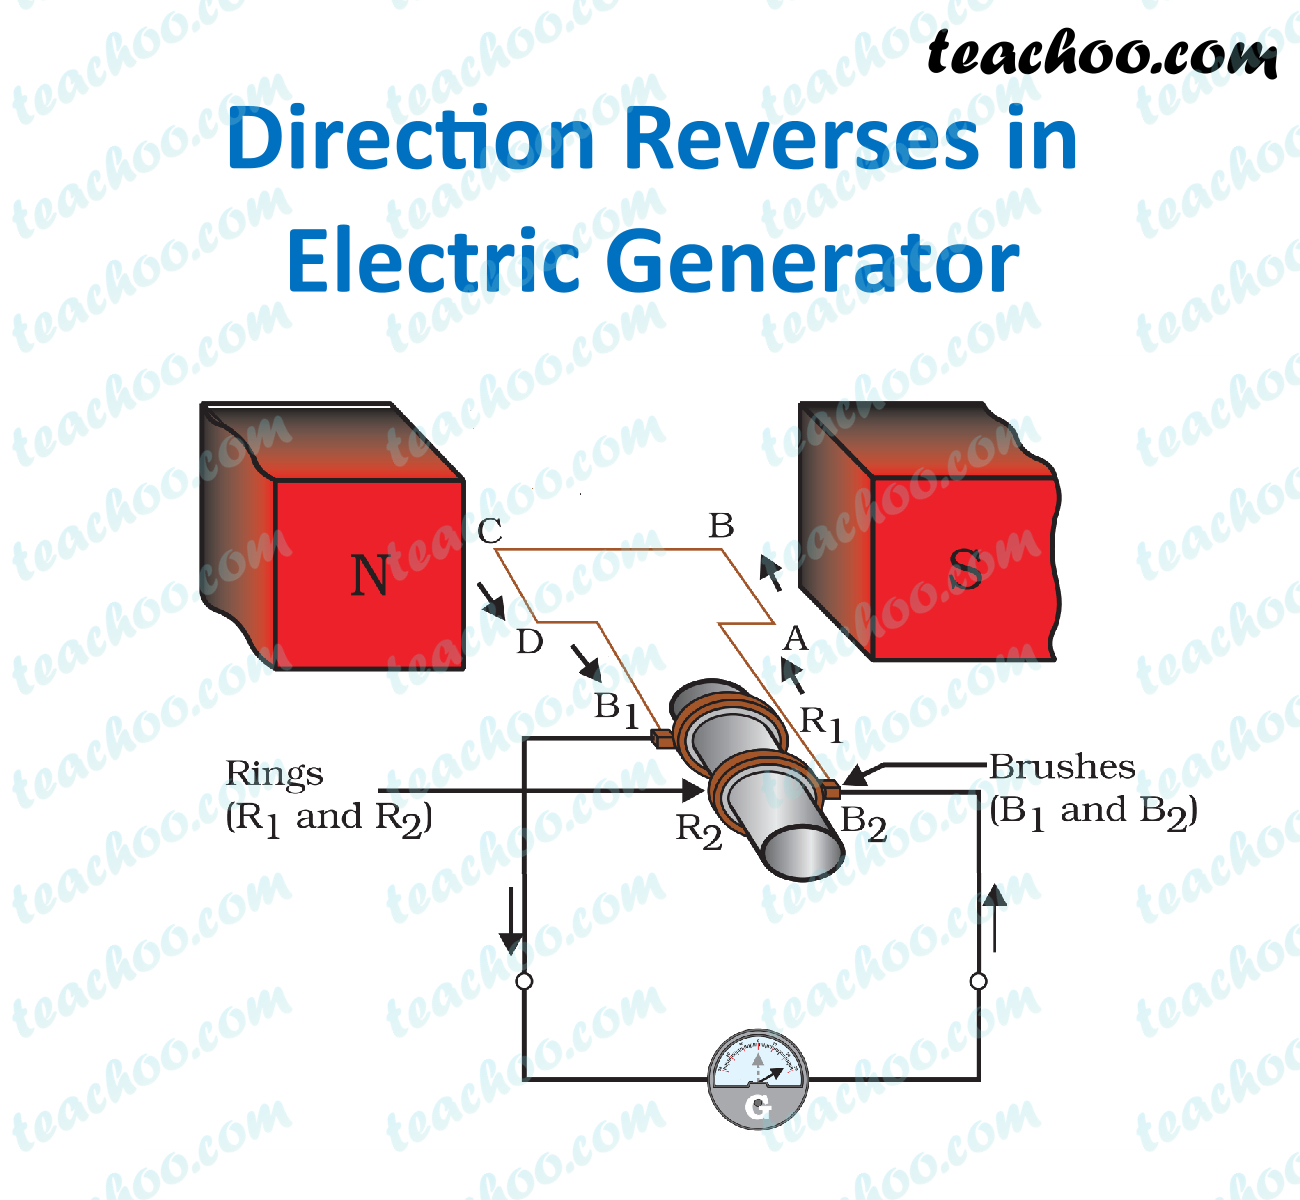 electric-generator---direction-reverses---teachoo.jpg